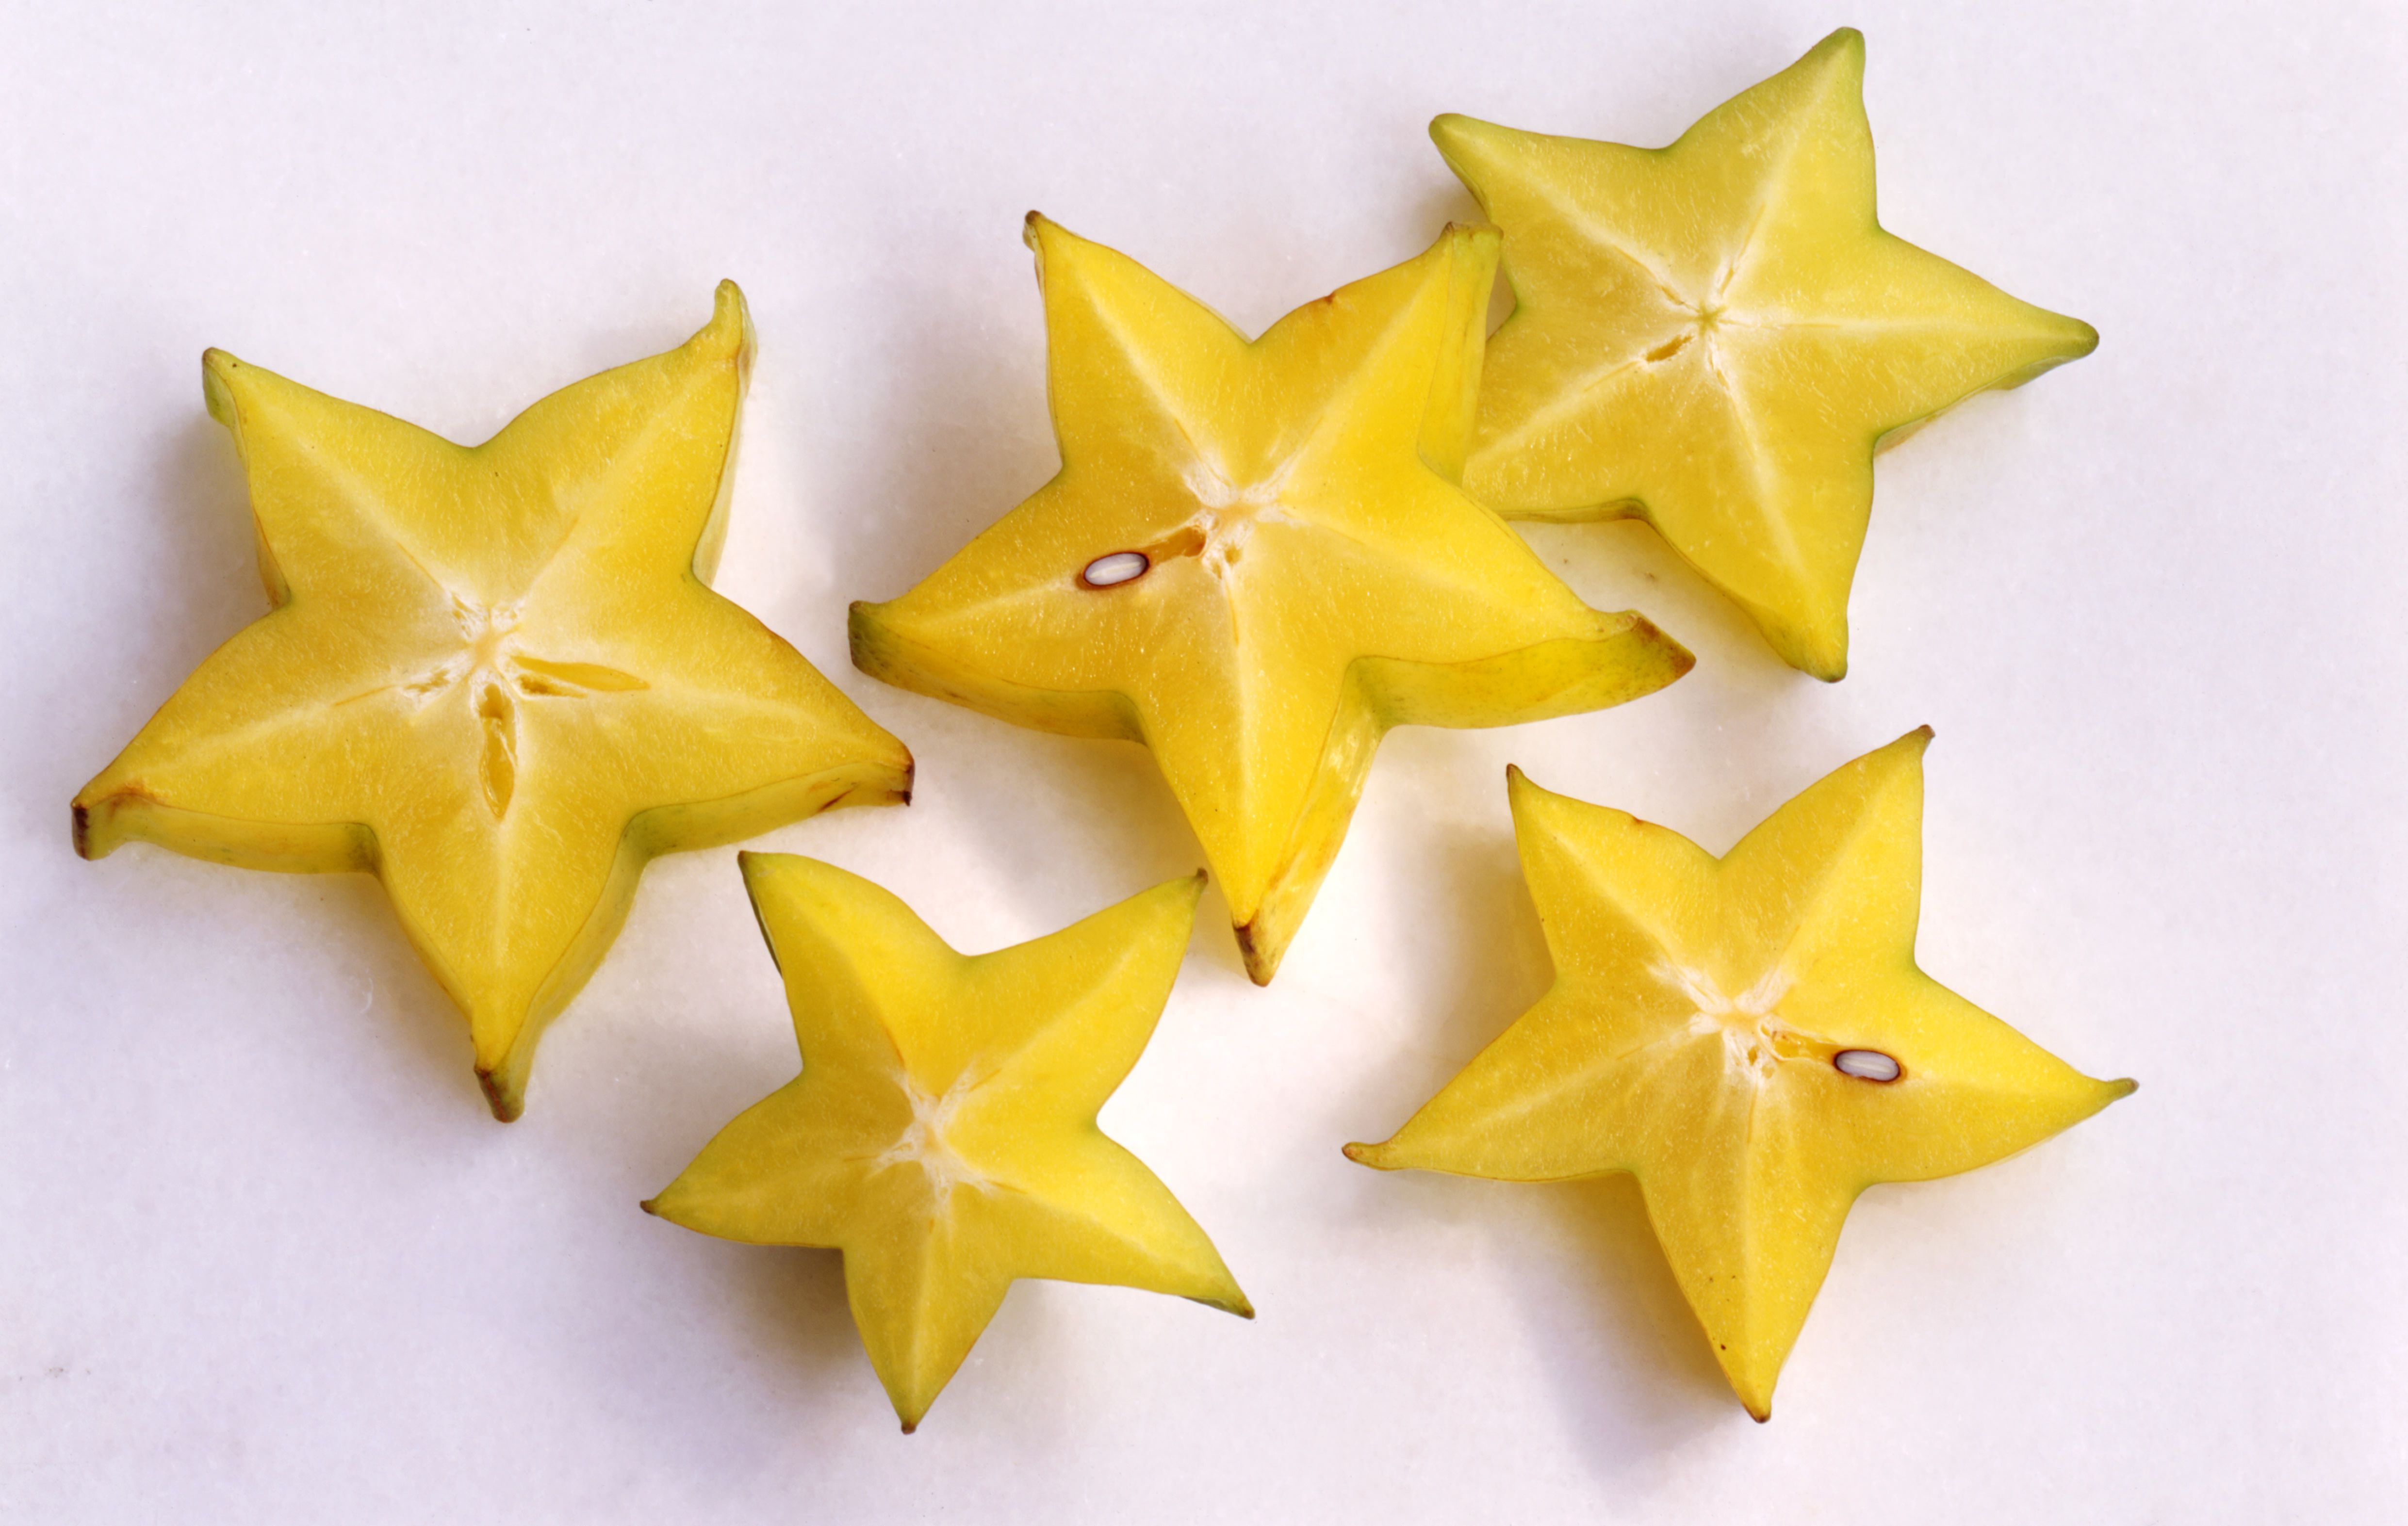 Star Fruit In Mango Orange Sauce Recipe